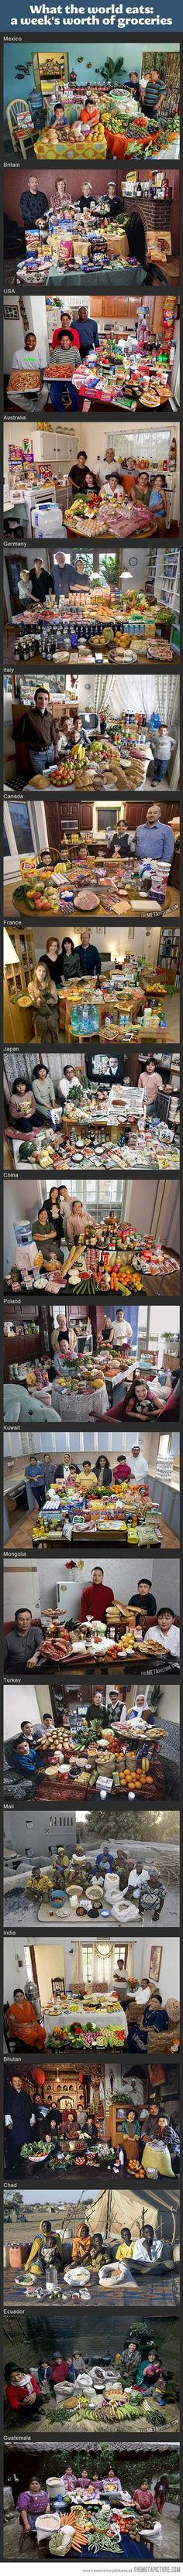 A Week's Worth of Groceries from Around the World | Wow!  What an eye-opening way to discuss food and meals in different countries!